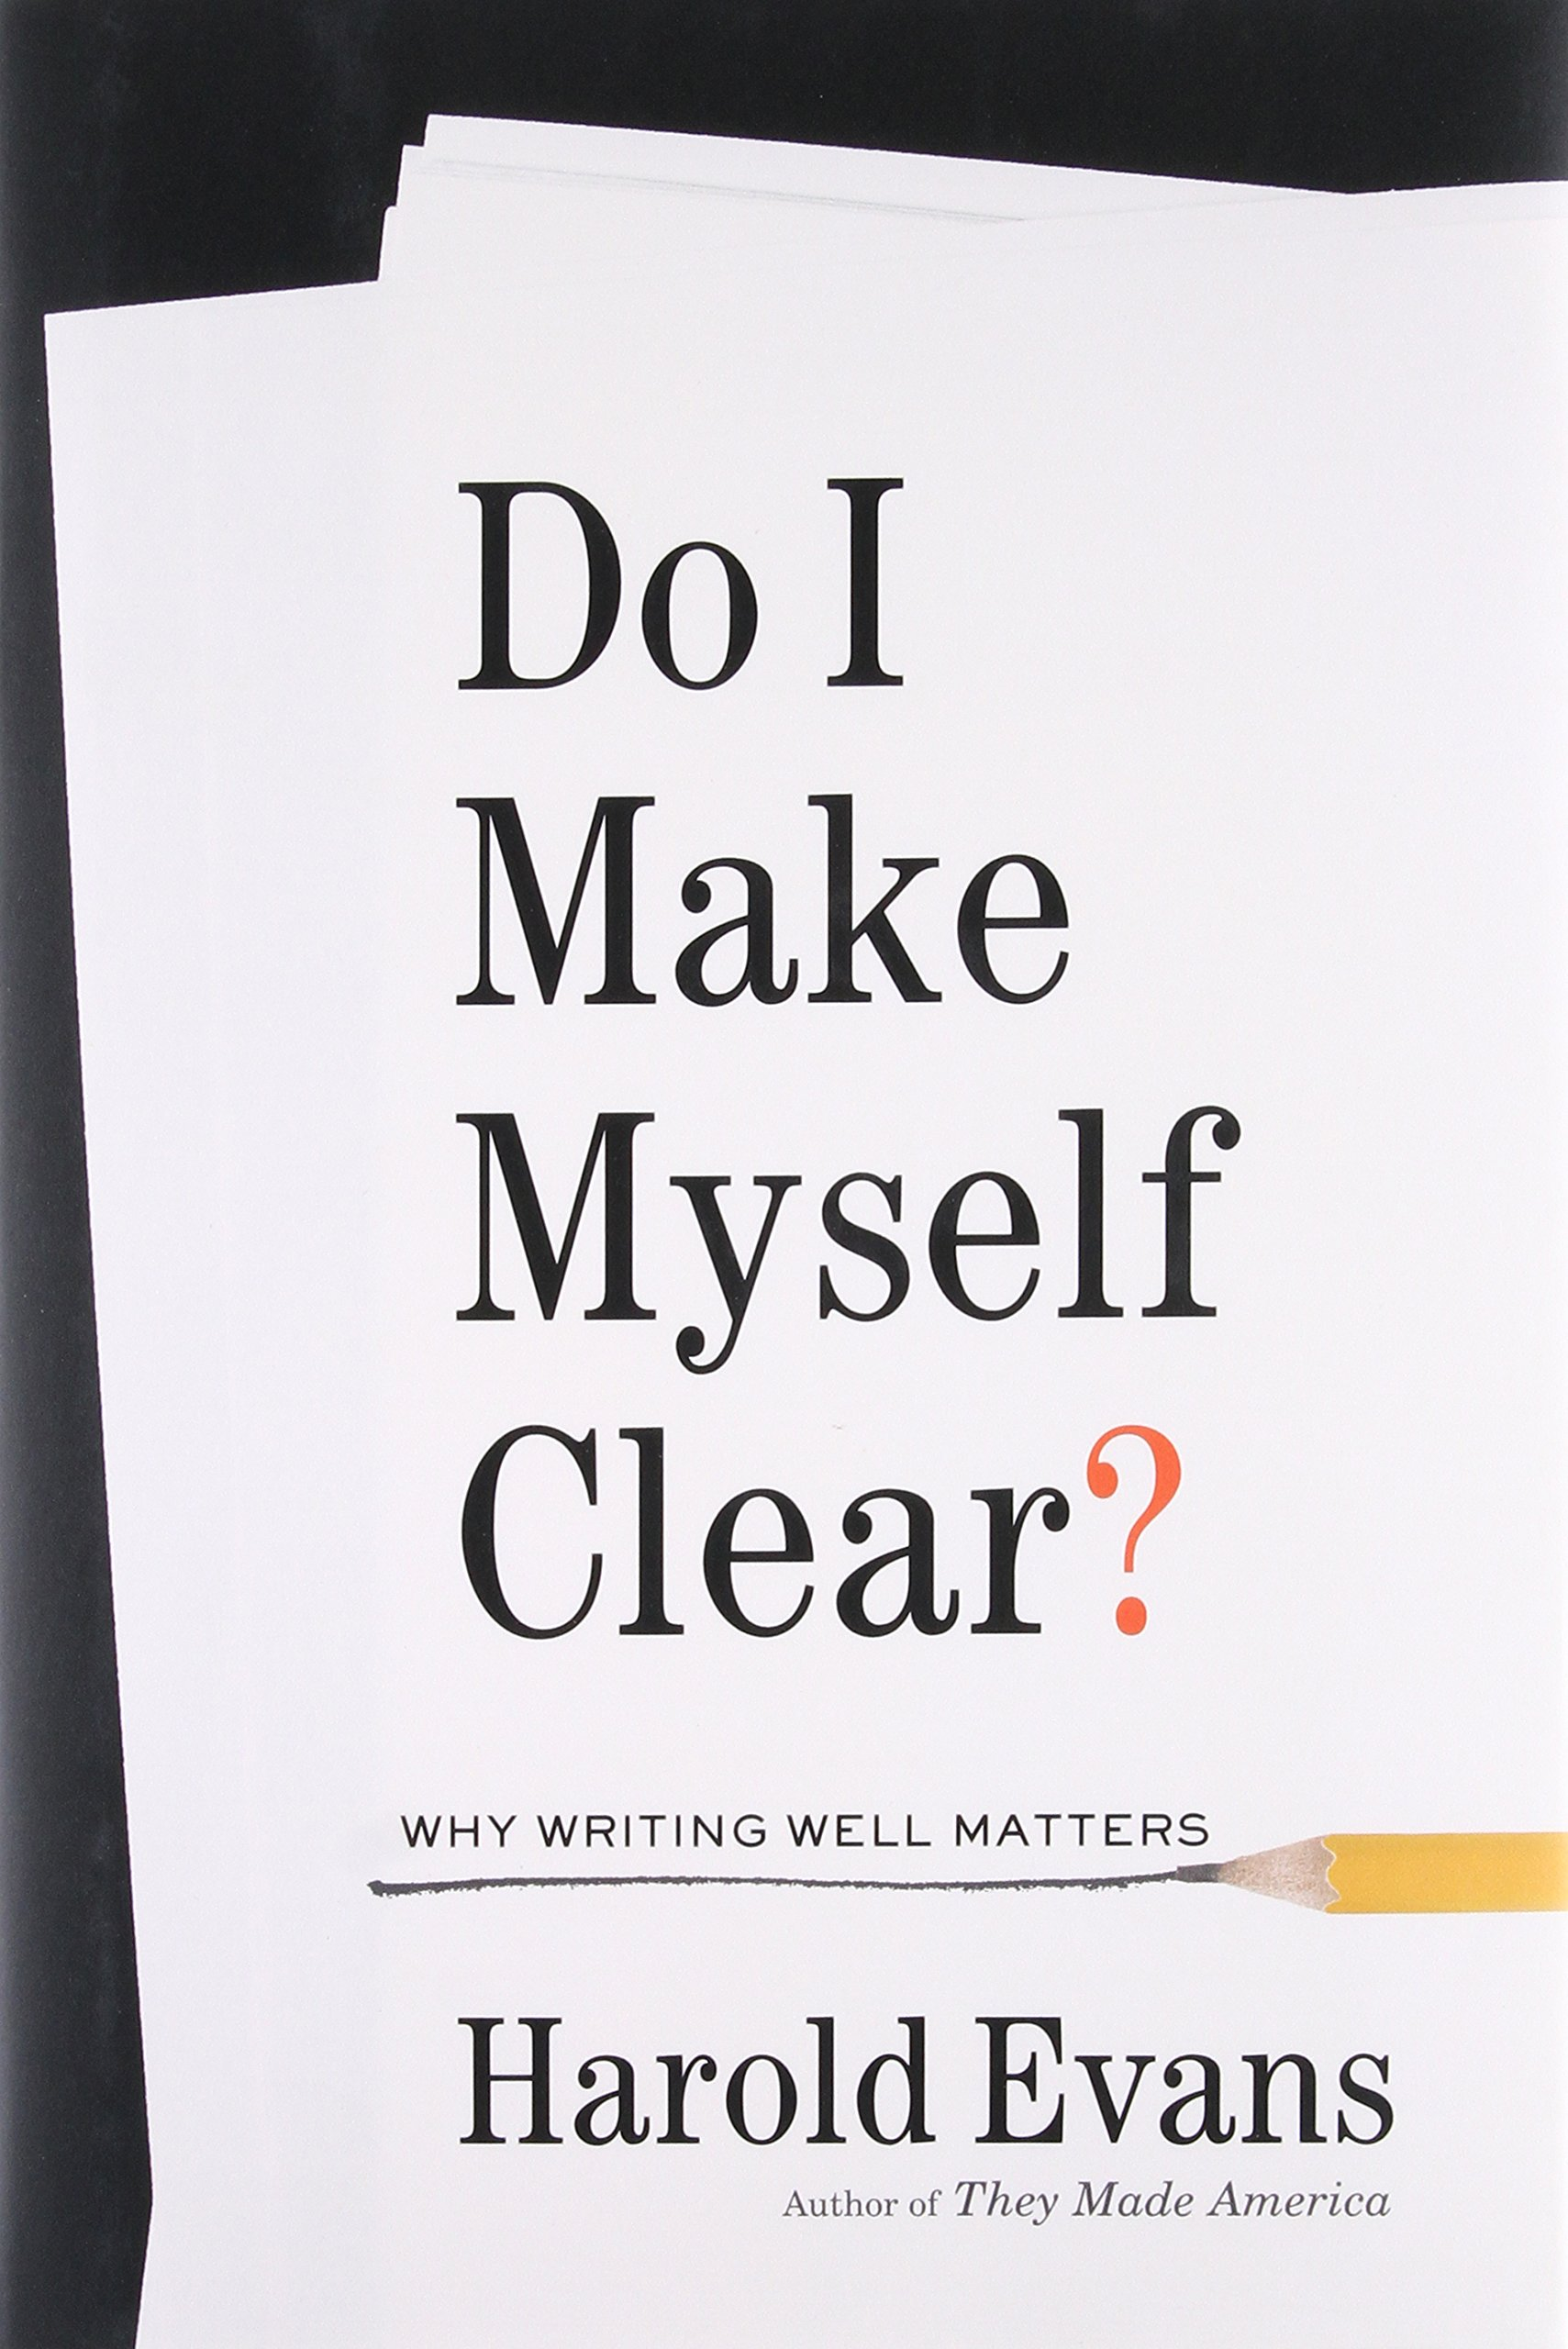 Do i make myself clear why writing well matters harold evans why writing well matters harold evans 9780316277174 amazon books fandeluxe Choice Image